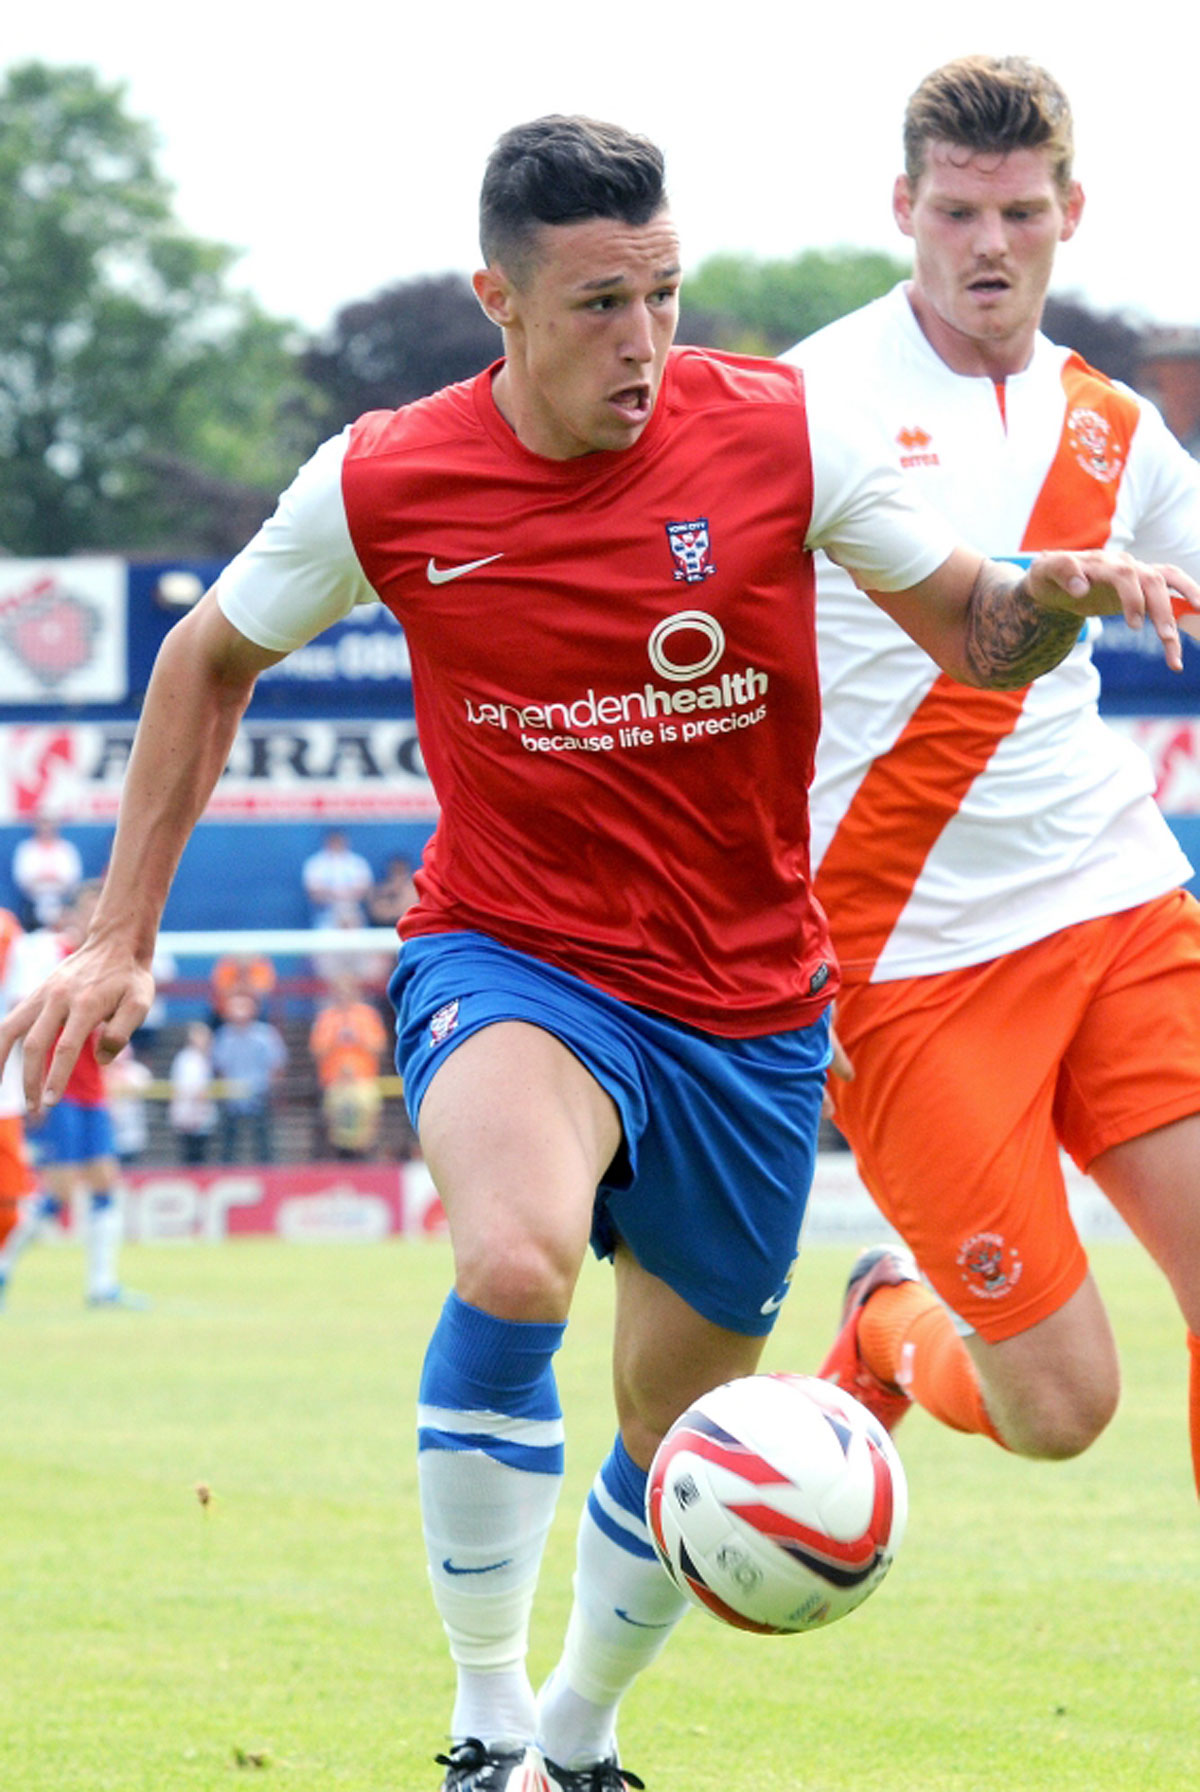 Match preview: York City manager in call for more goal scorers